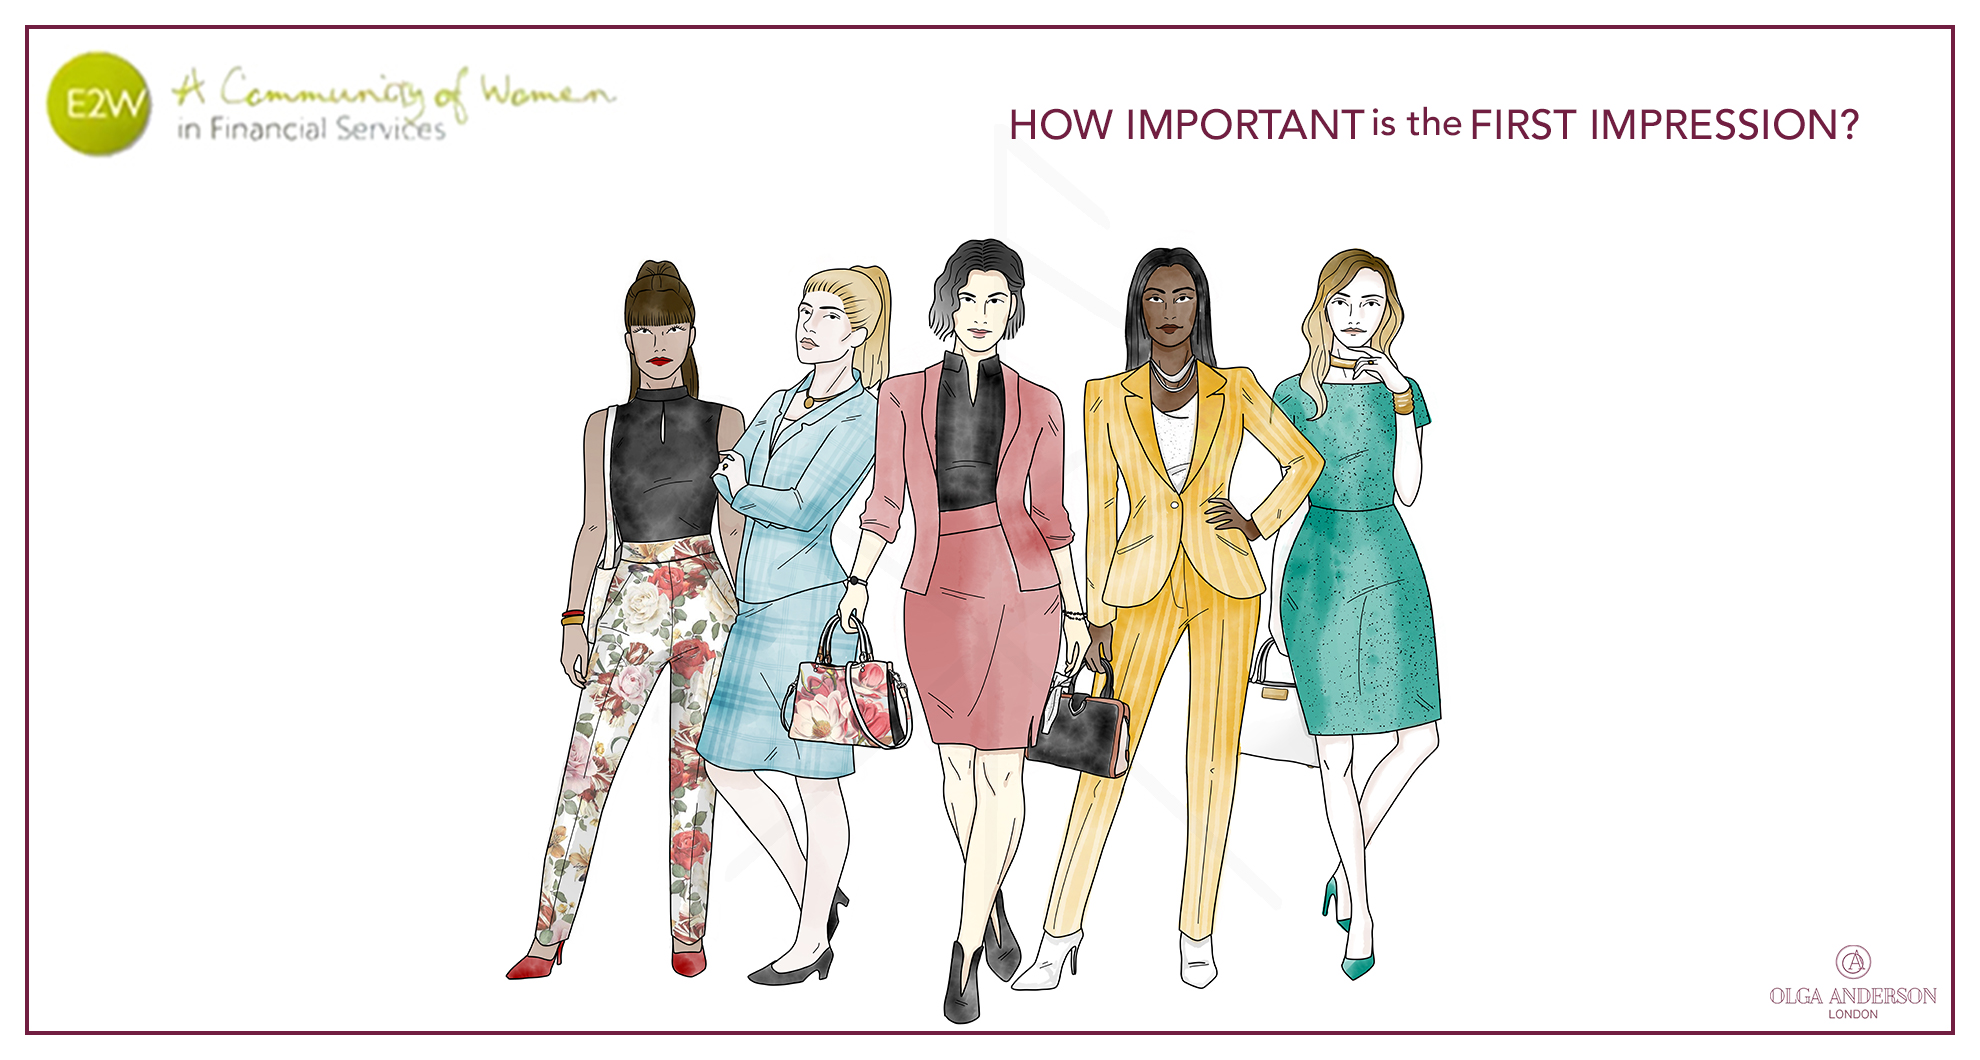 Olga Anderson - How Important is a First Impression?